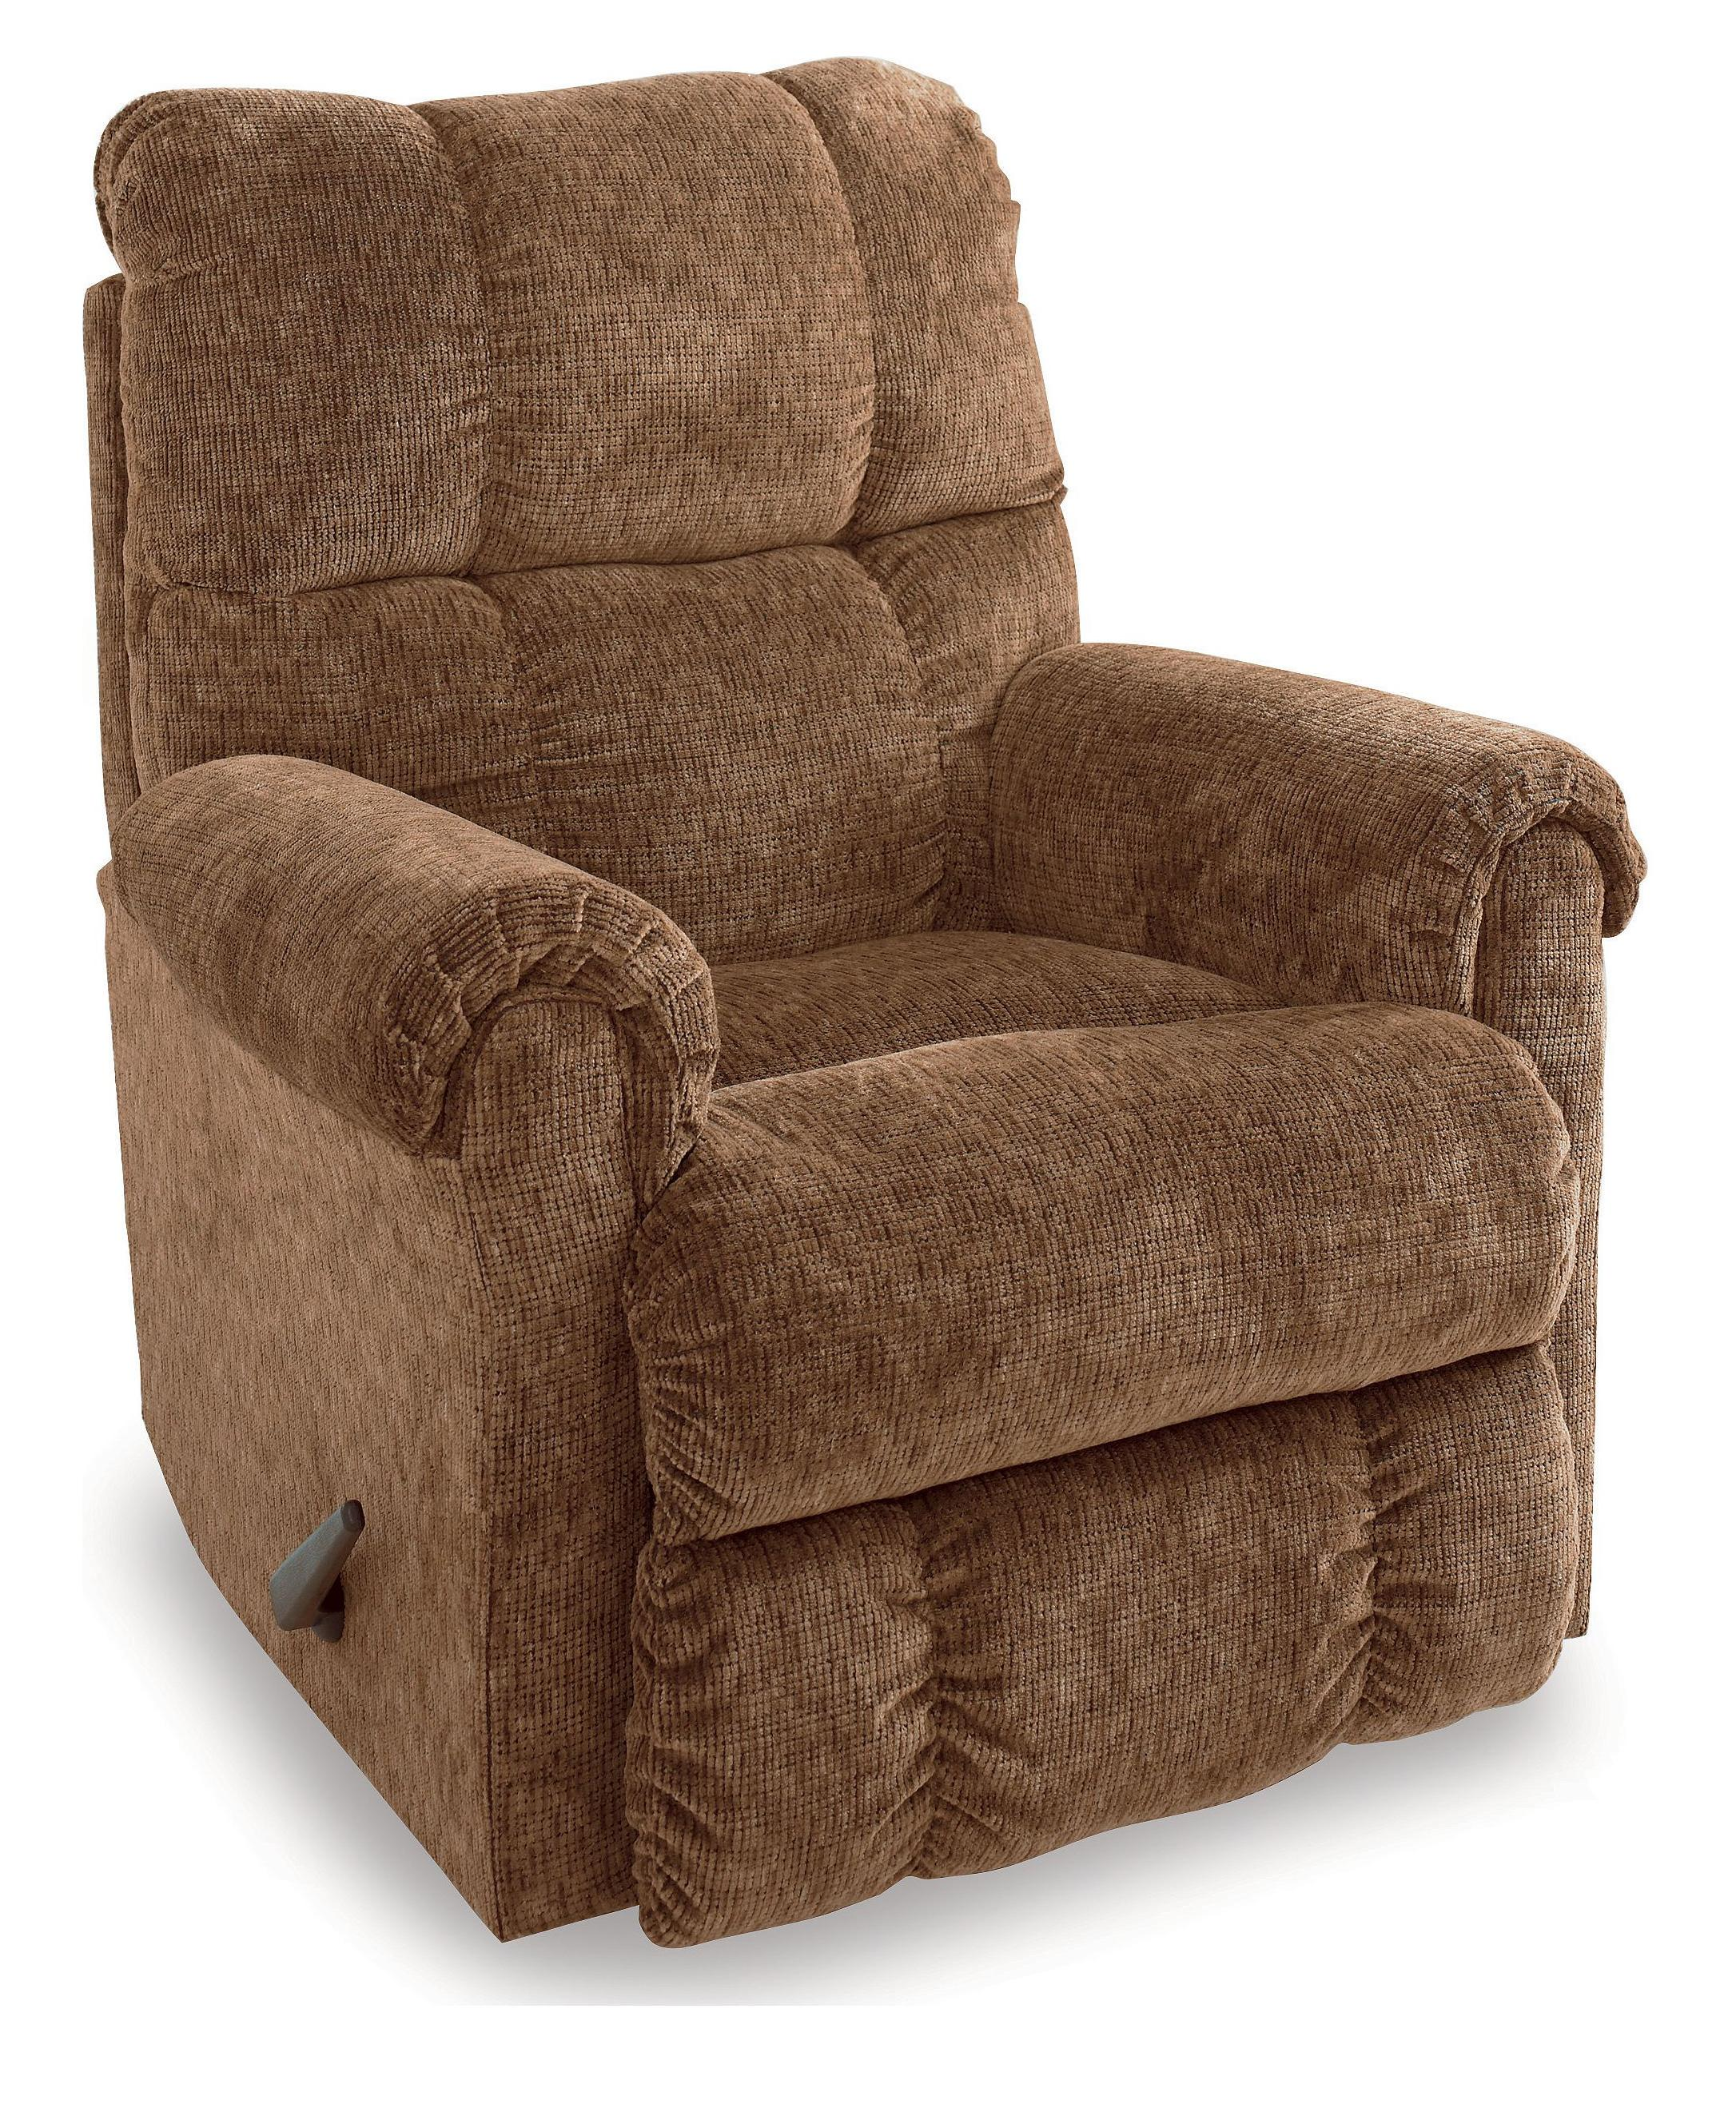 Lane eureka casual pad over chaise wallsaver recliner for Bulldog pad over chaise rocker recliner